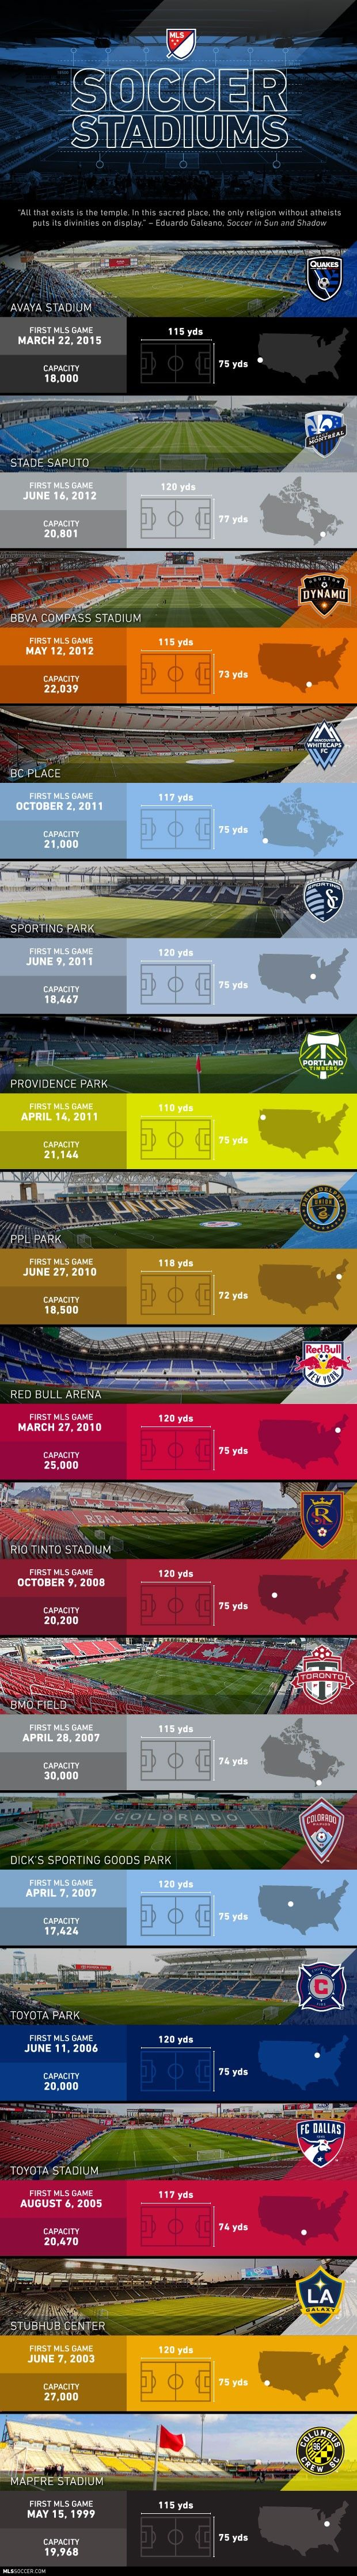 INFOGRAPHIC: Avaya Stadium becomes 15th soccer stadium in MLS | MLSsoccer.com